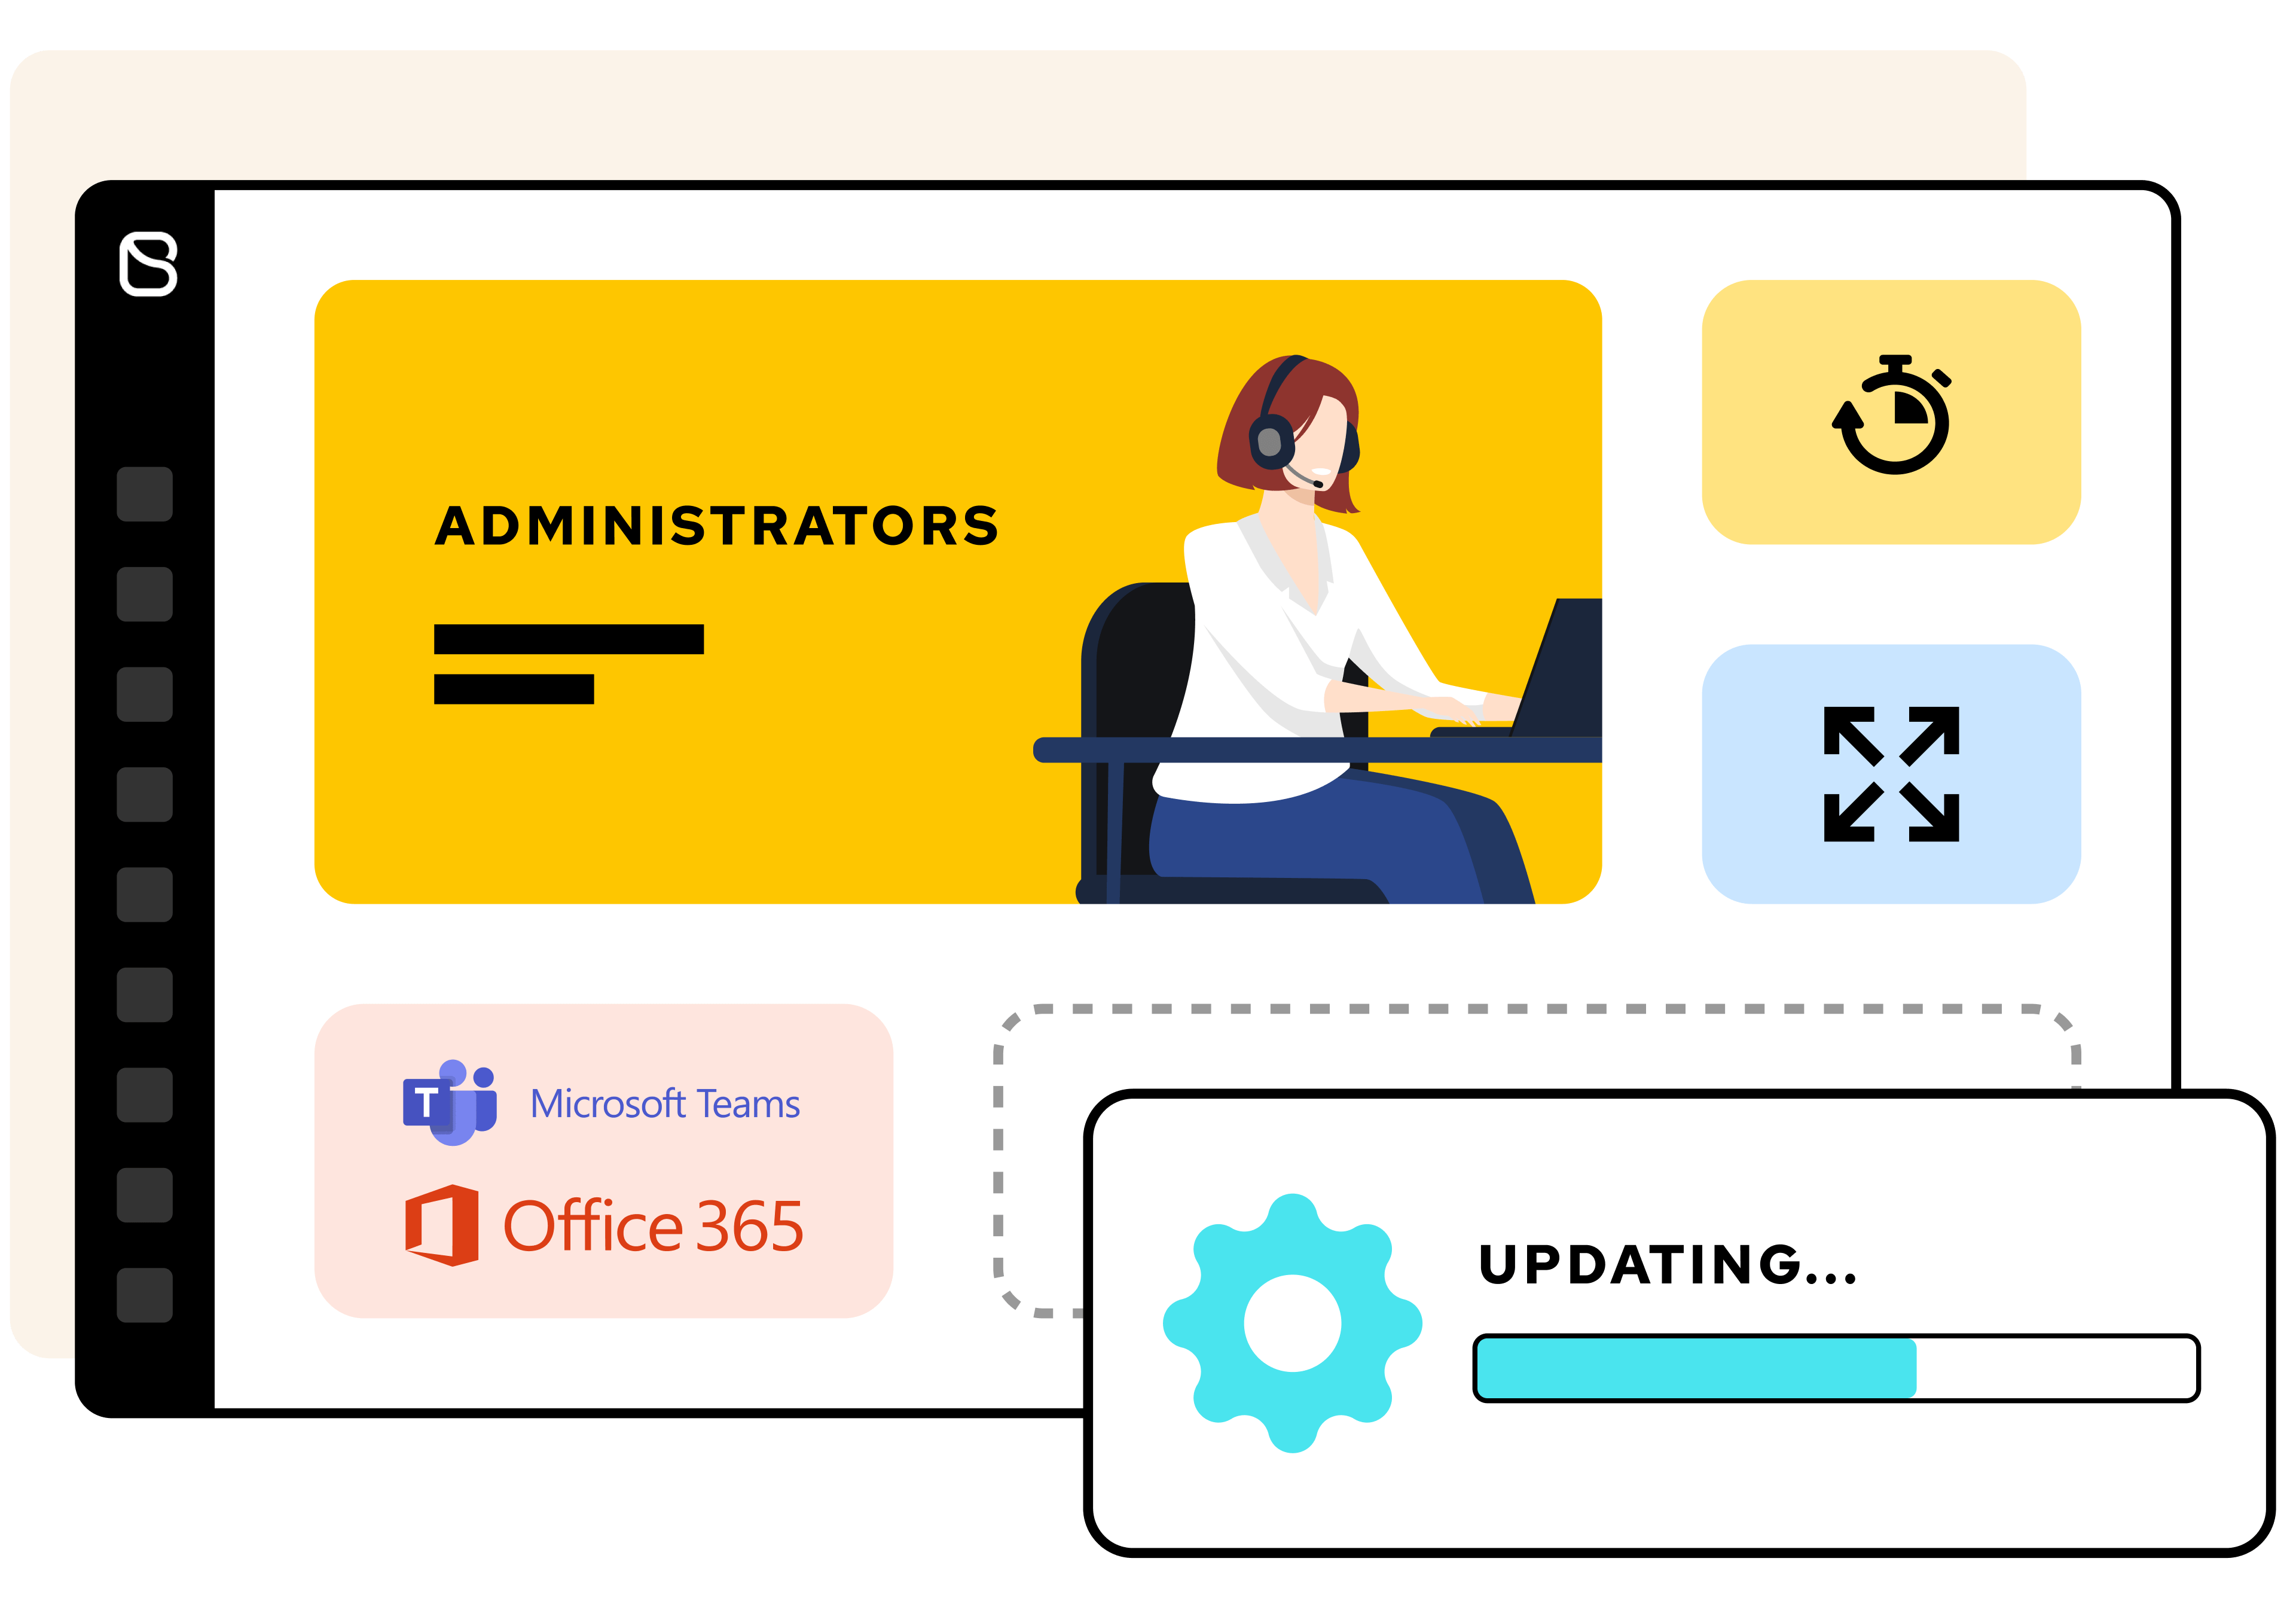 Digital workspaces tailored for administrators needs